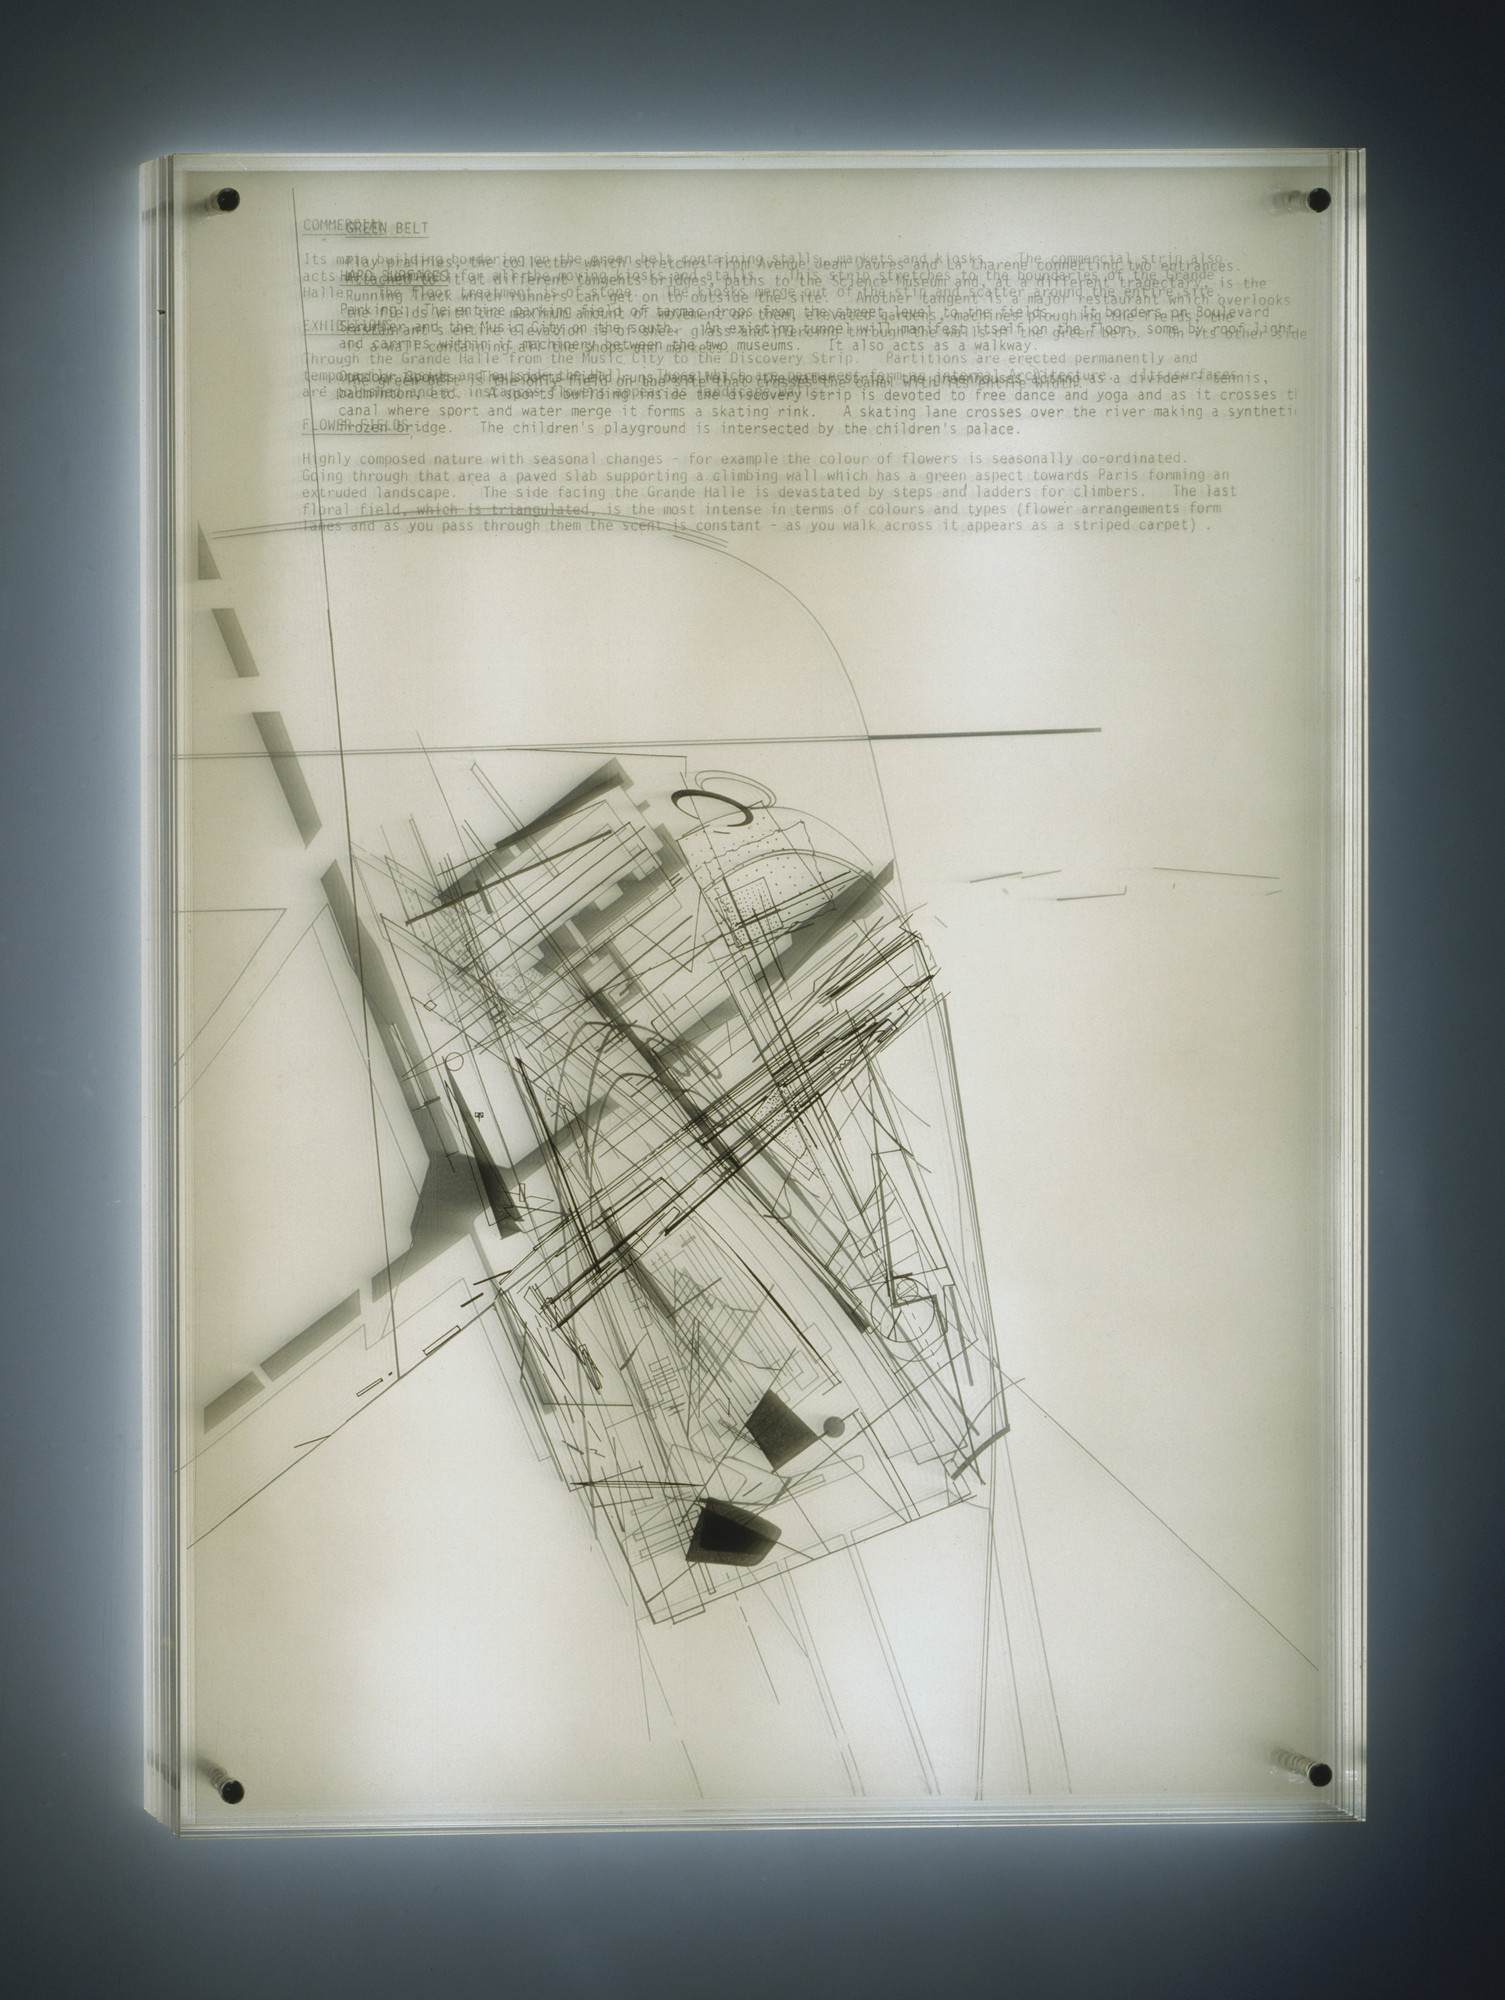 Zaha Hadid. Parc de la Villette Project, Paris, France (Plan). 1982-83